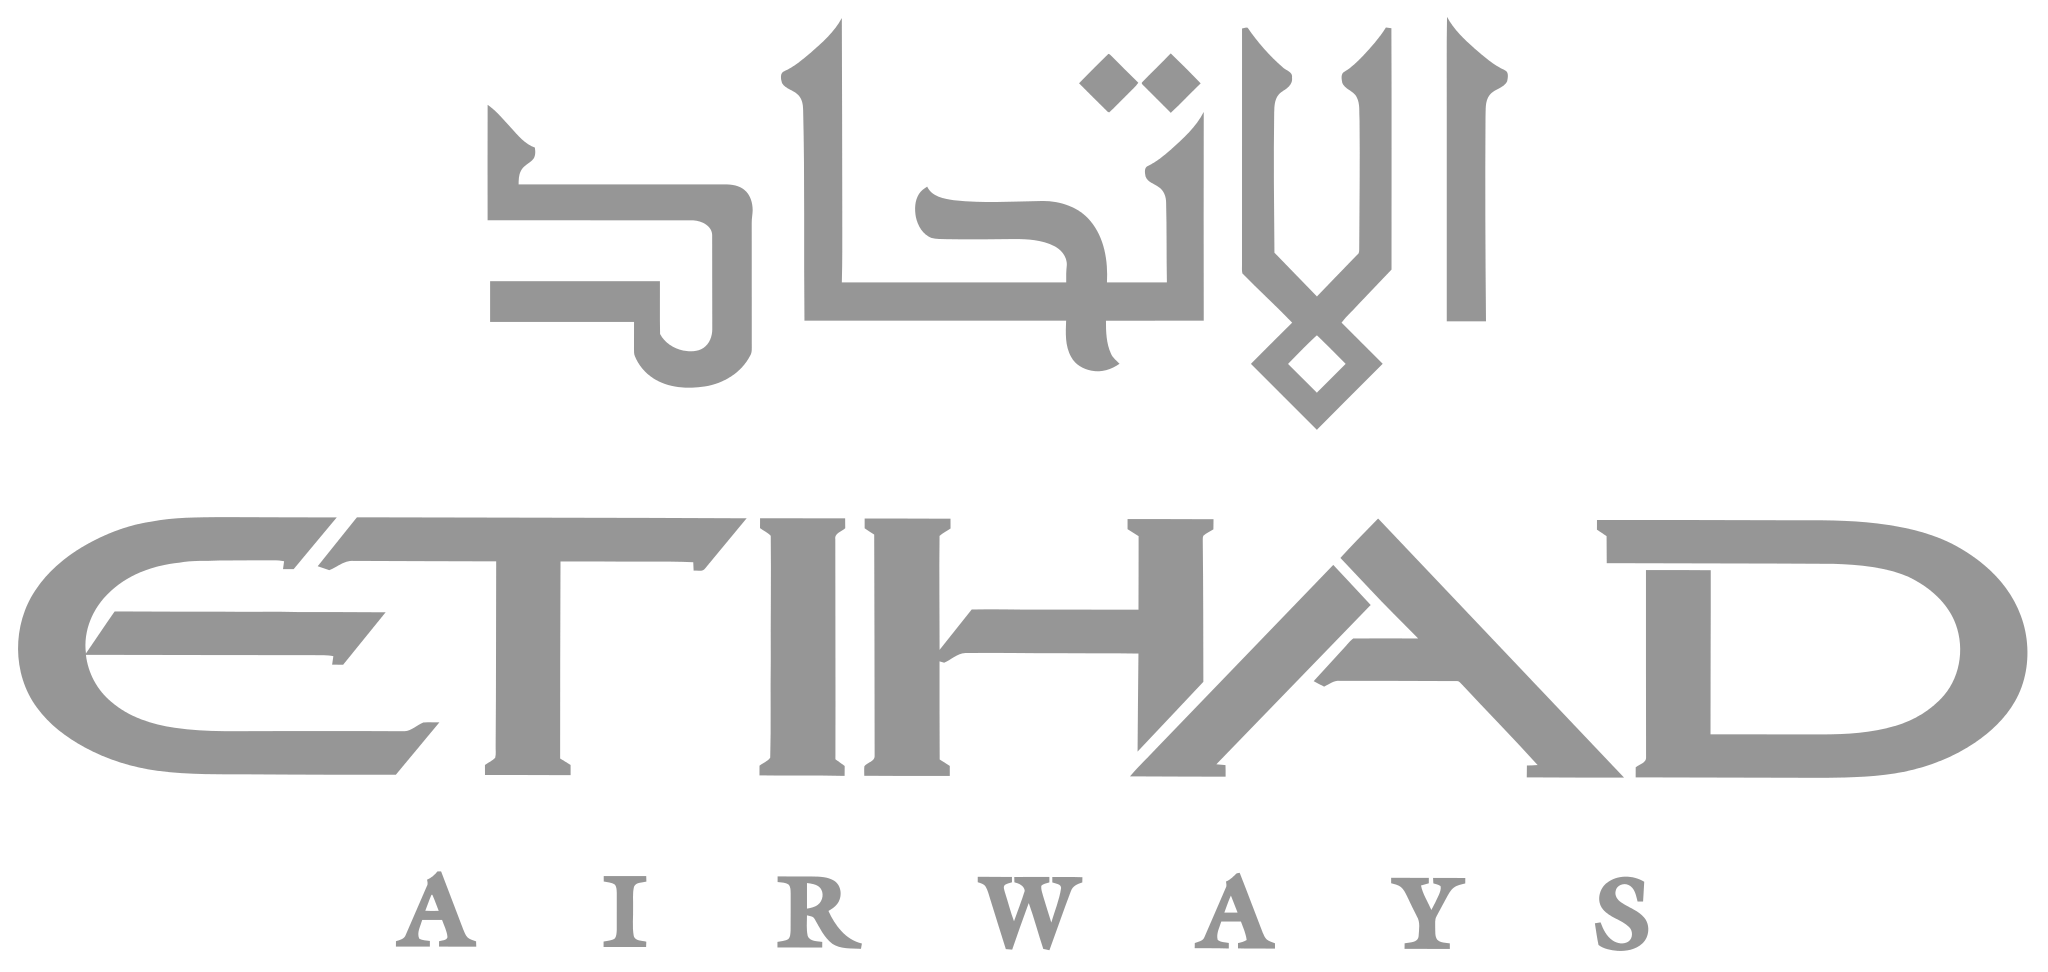 파일:attachment/2048px-Etihad_Airways_logo.svg.png